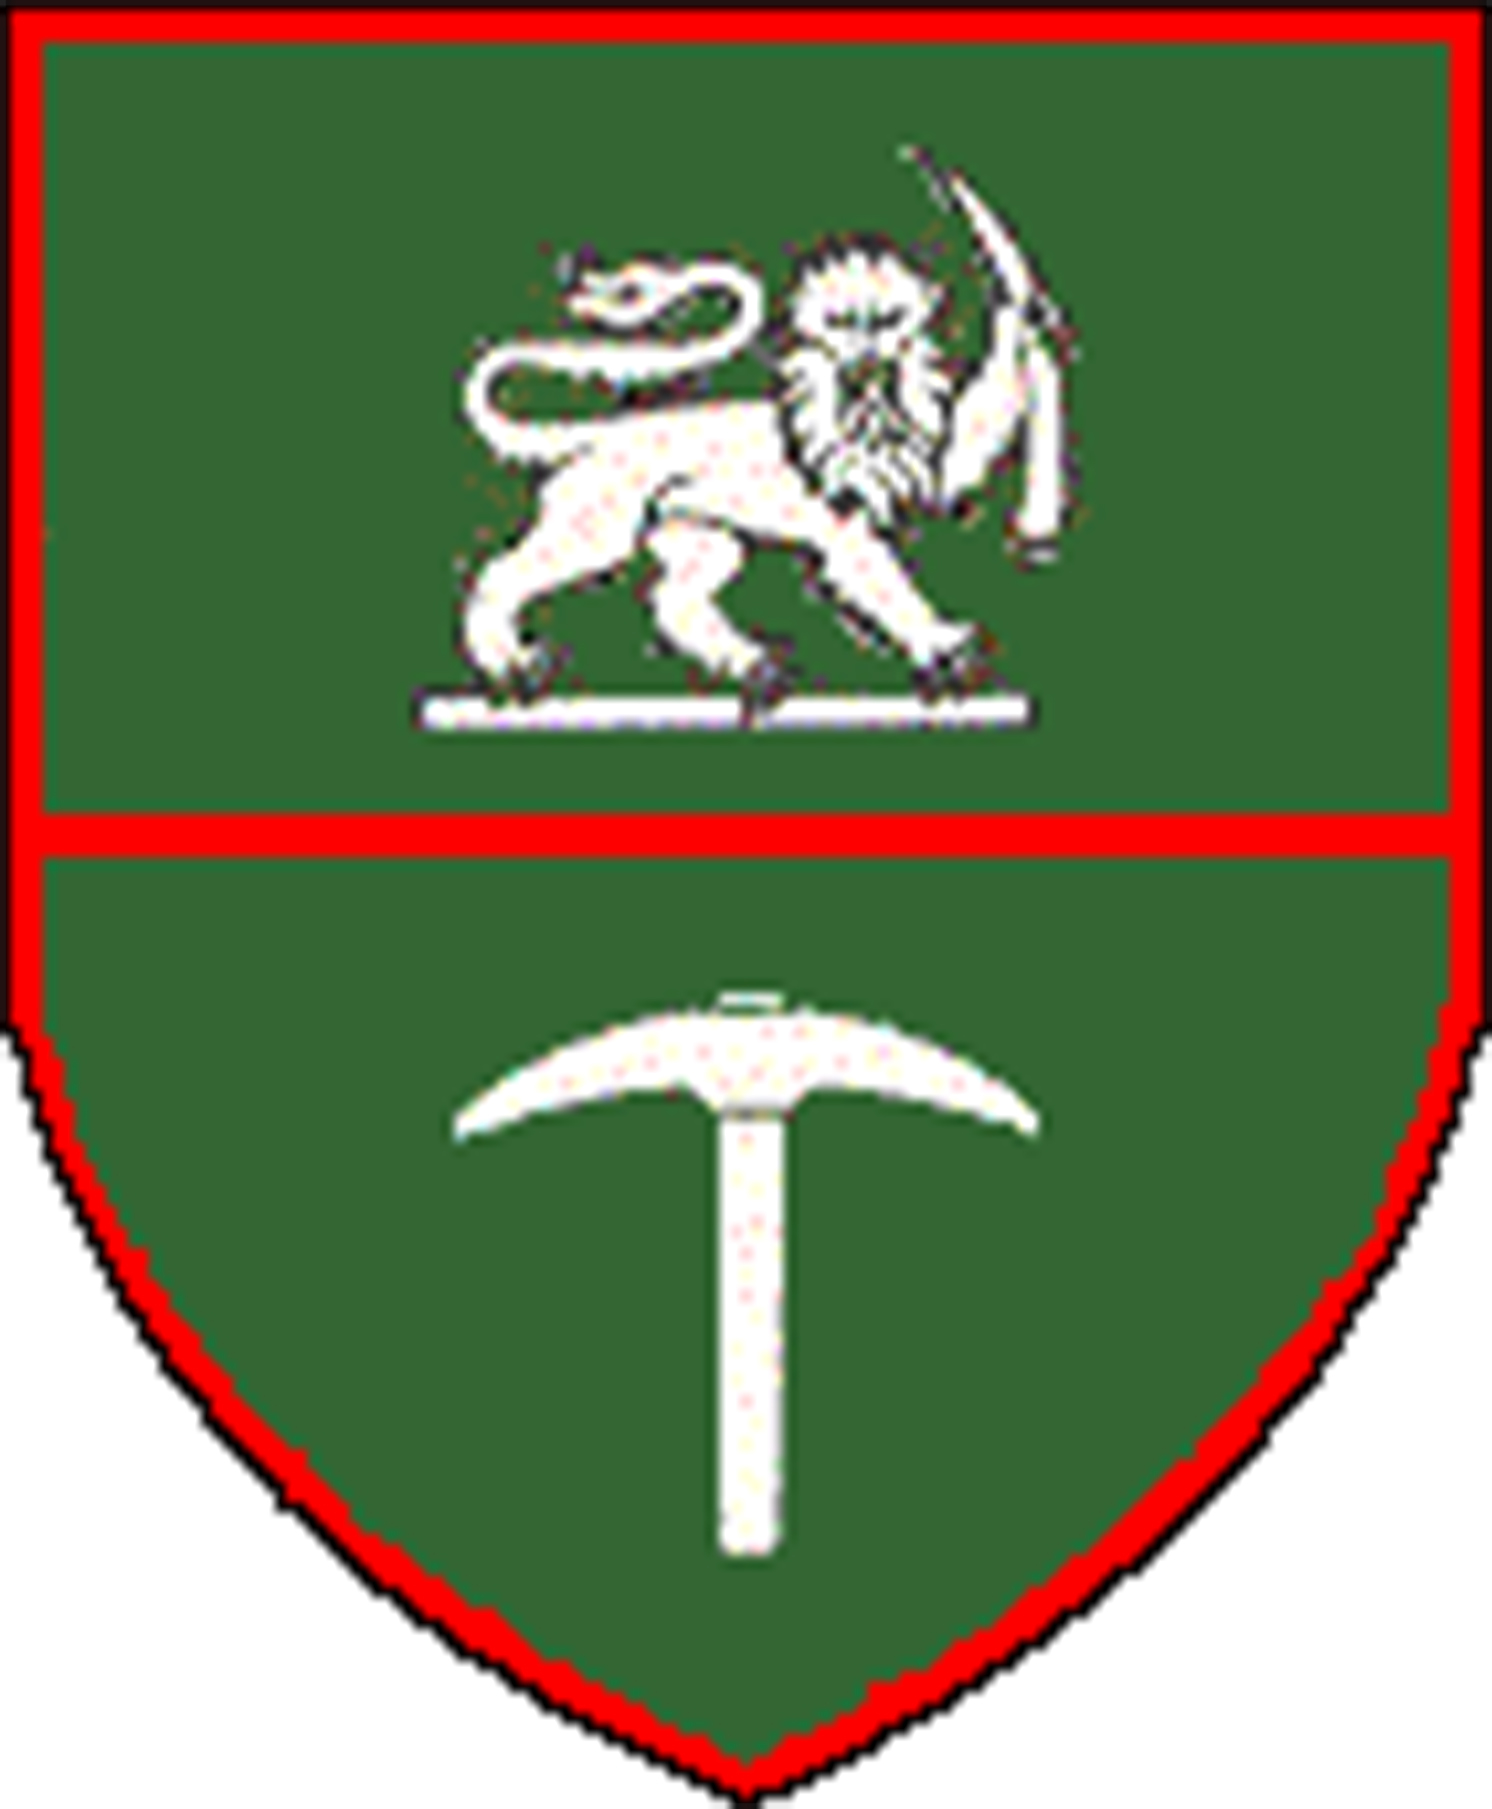 Rhodesian army crest which is the left side of the Rhodesian Army Association logo